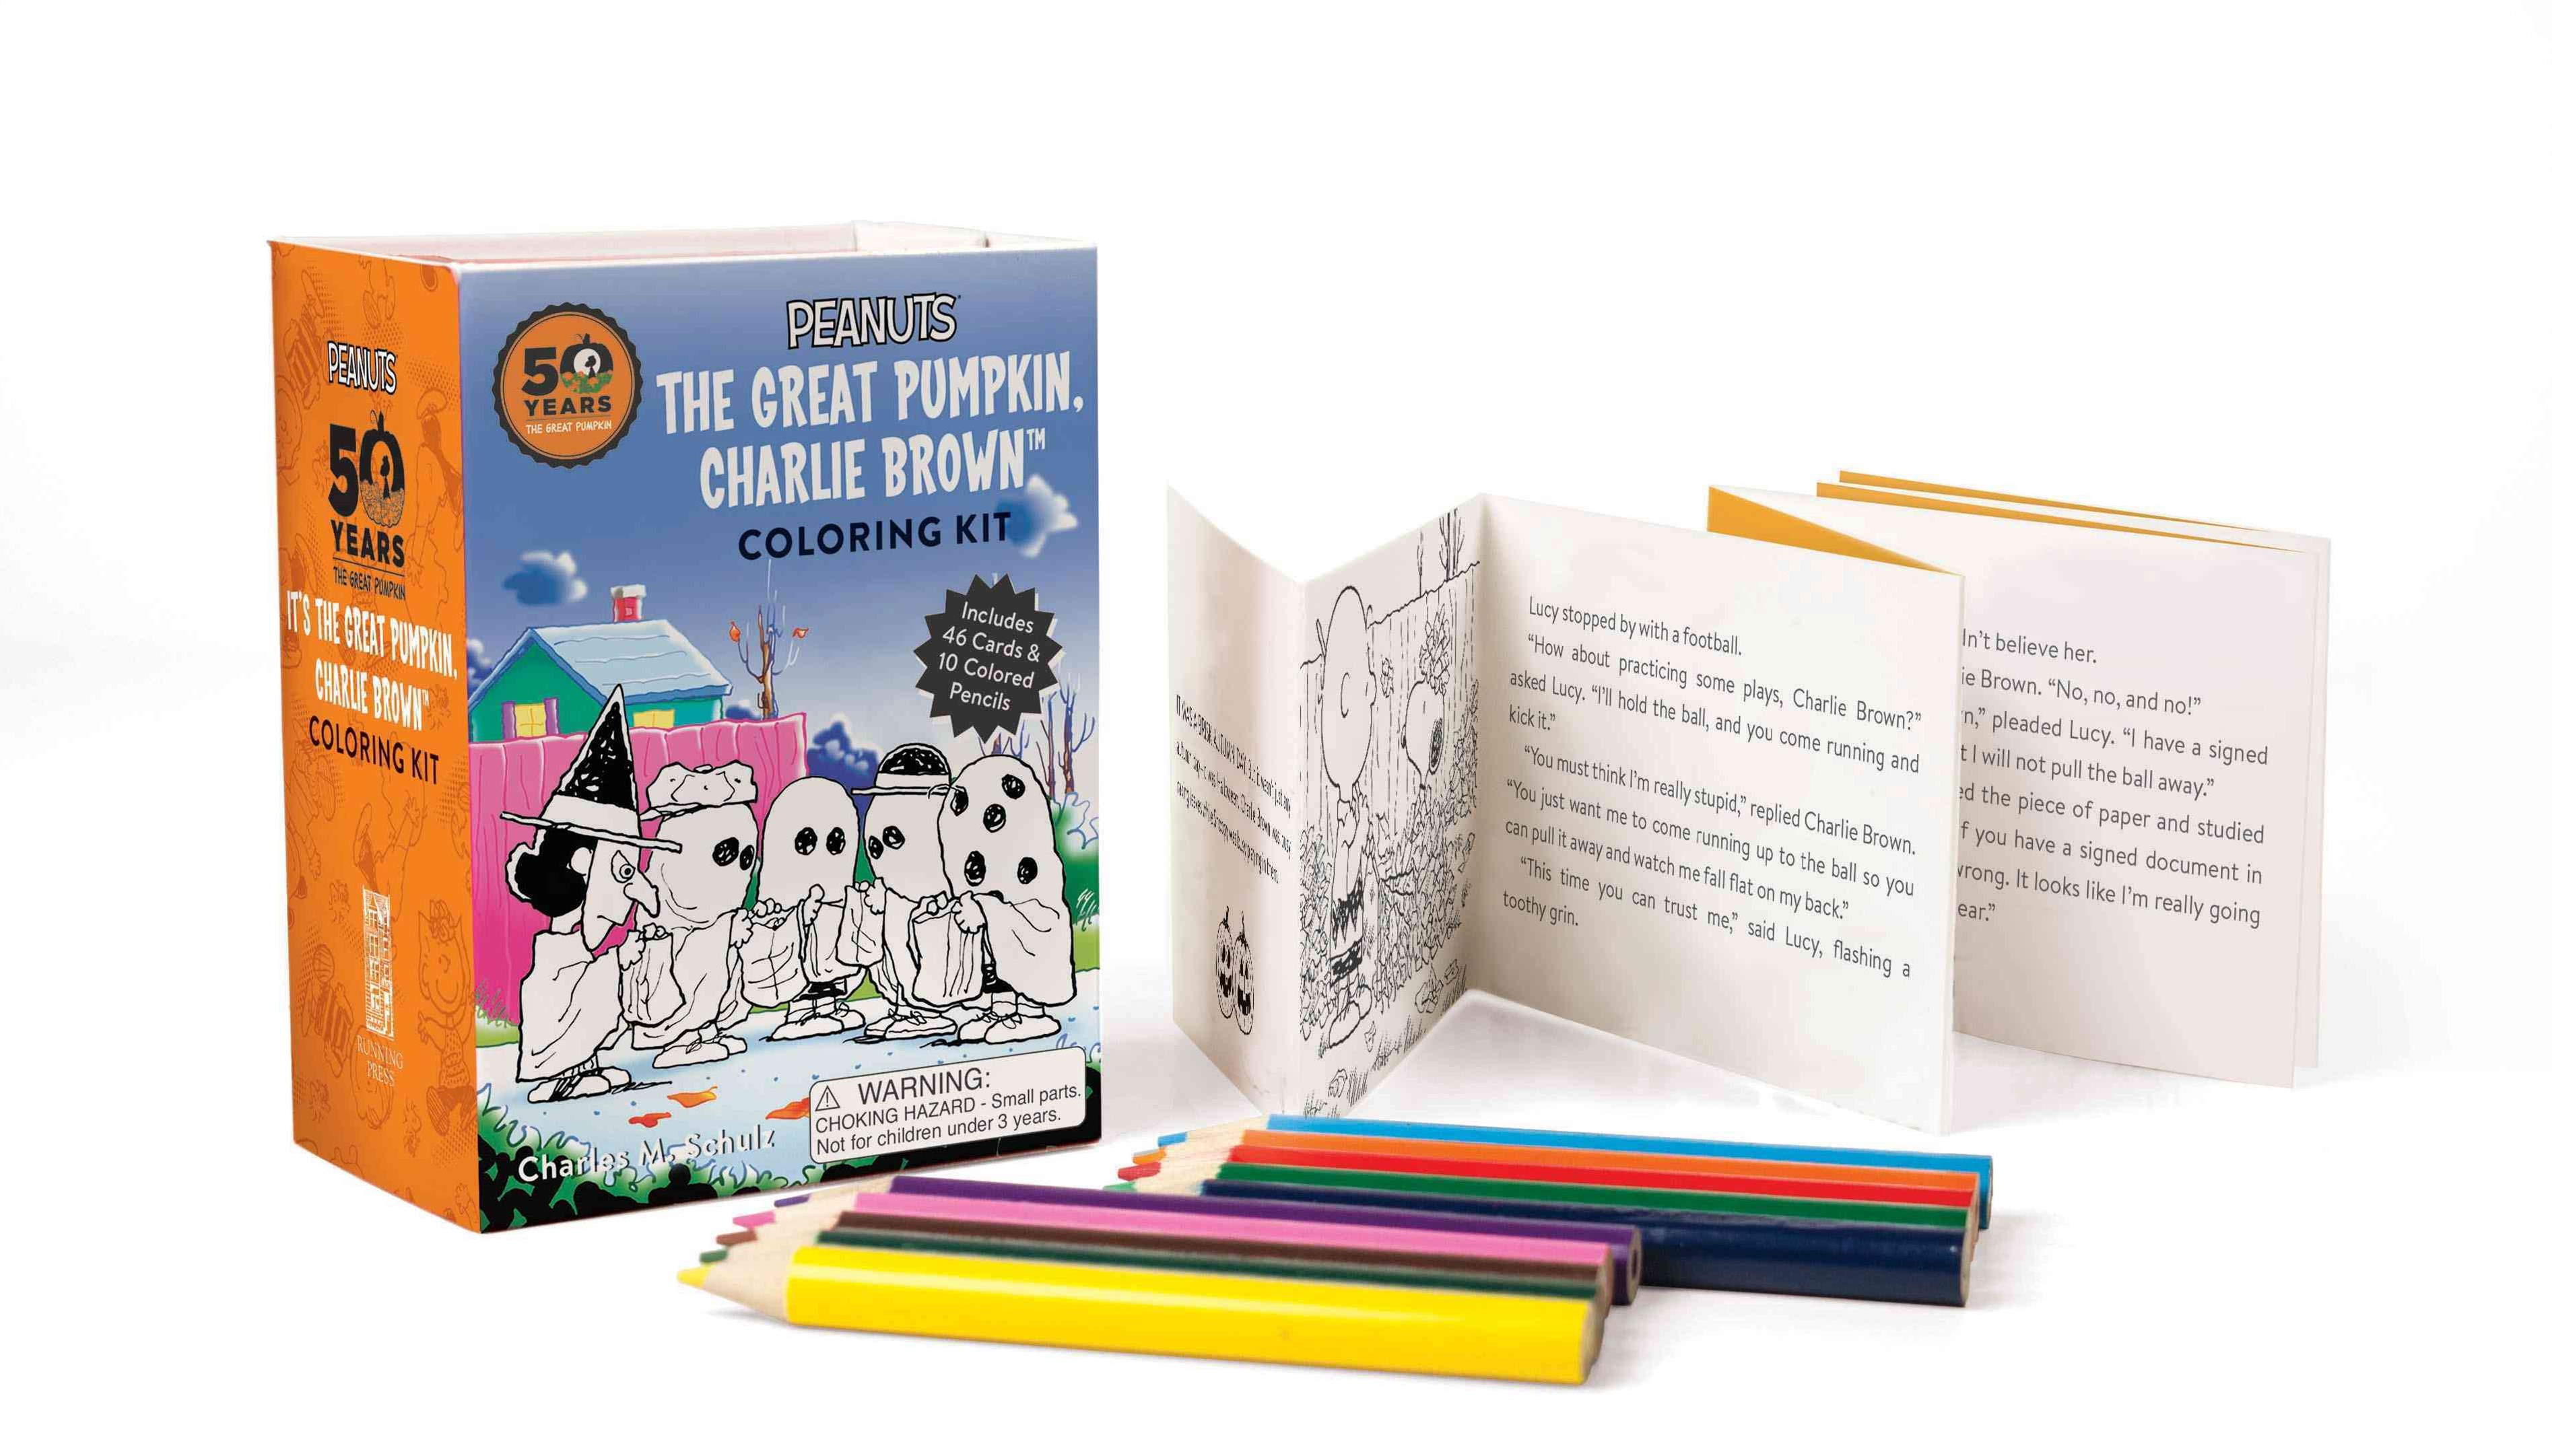 Peanuts: It's the Great Pumpkin Charlie Brown Coloring Kit